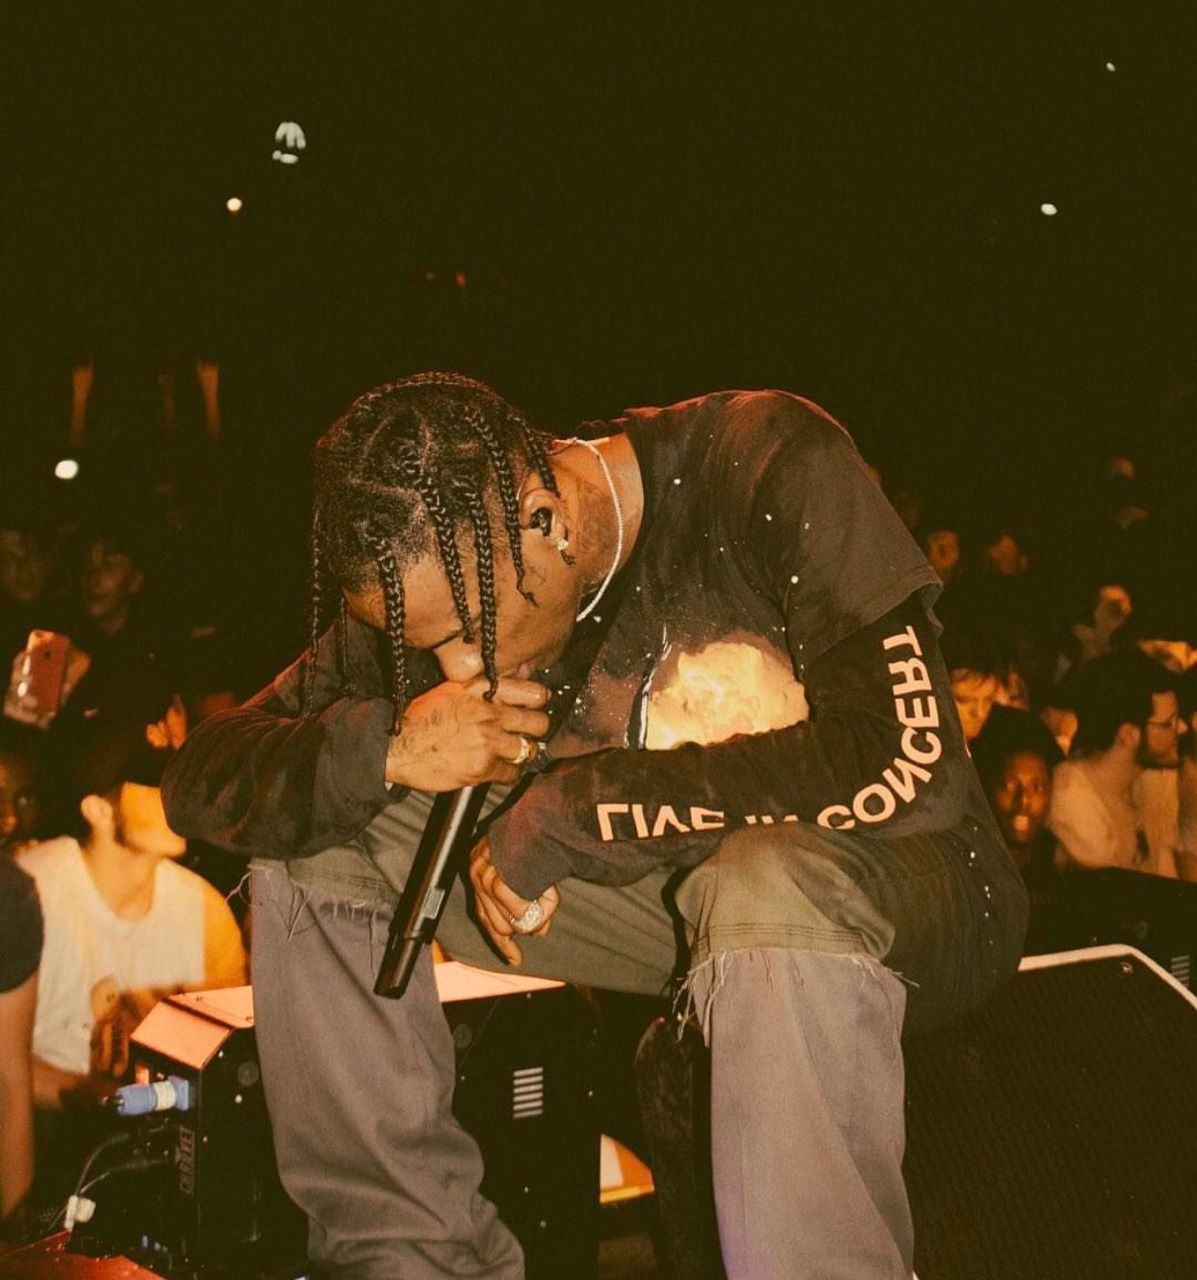 Travis Scott Tumblr Travis Scott Tumblr Travis Scott Travis Scott Wallpapers